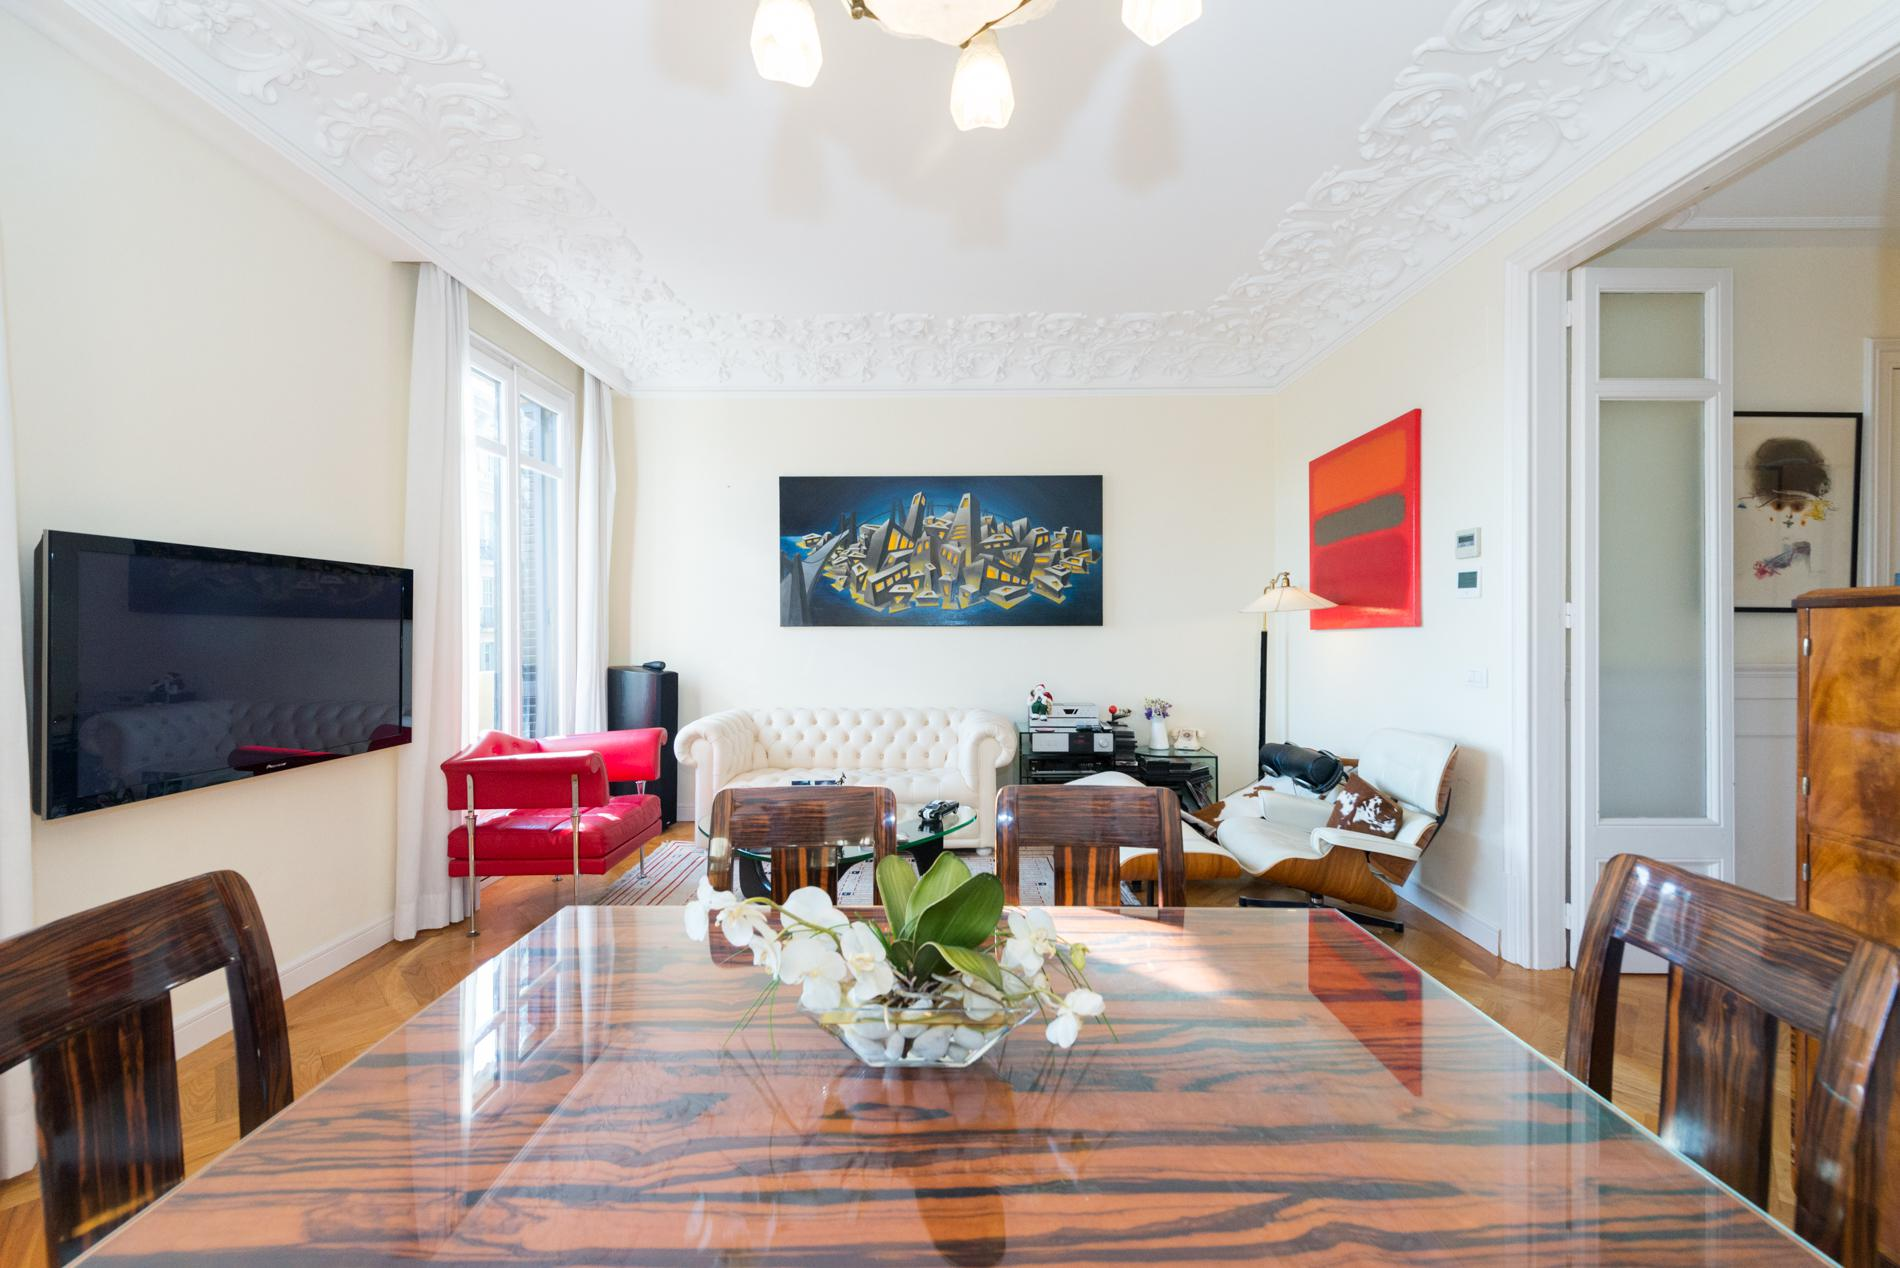 174066 Flat for sale in Eixample, Antiga Esquerre Eixample 4